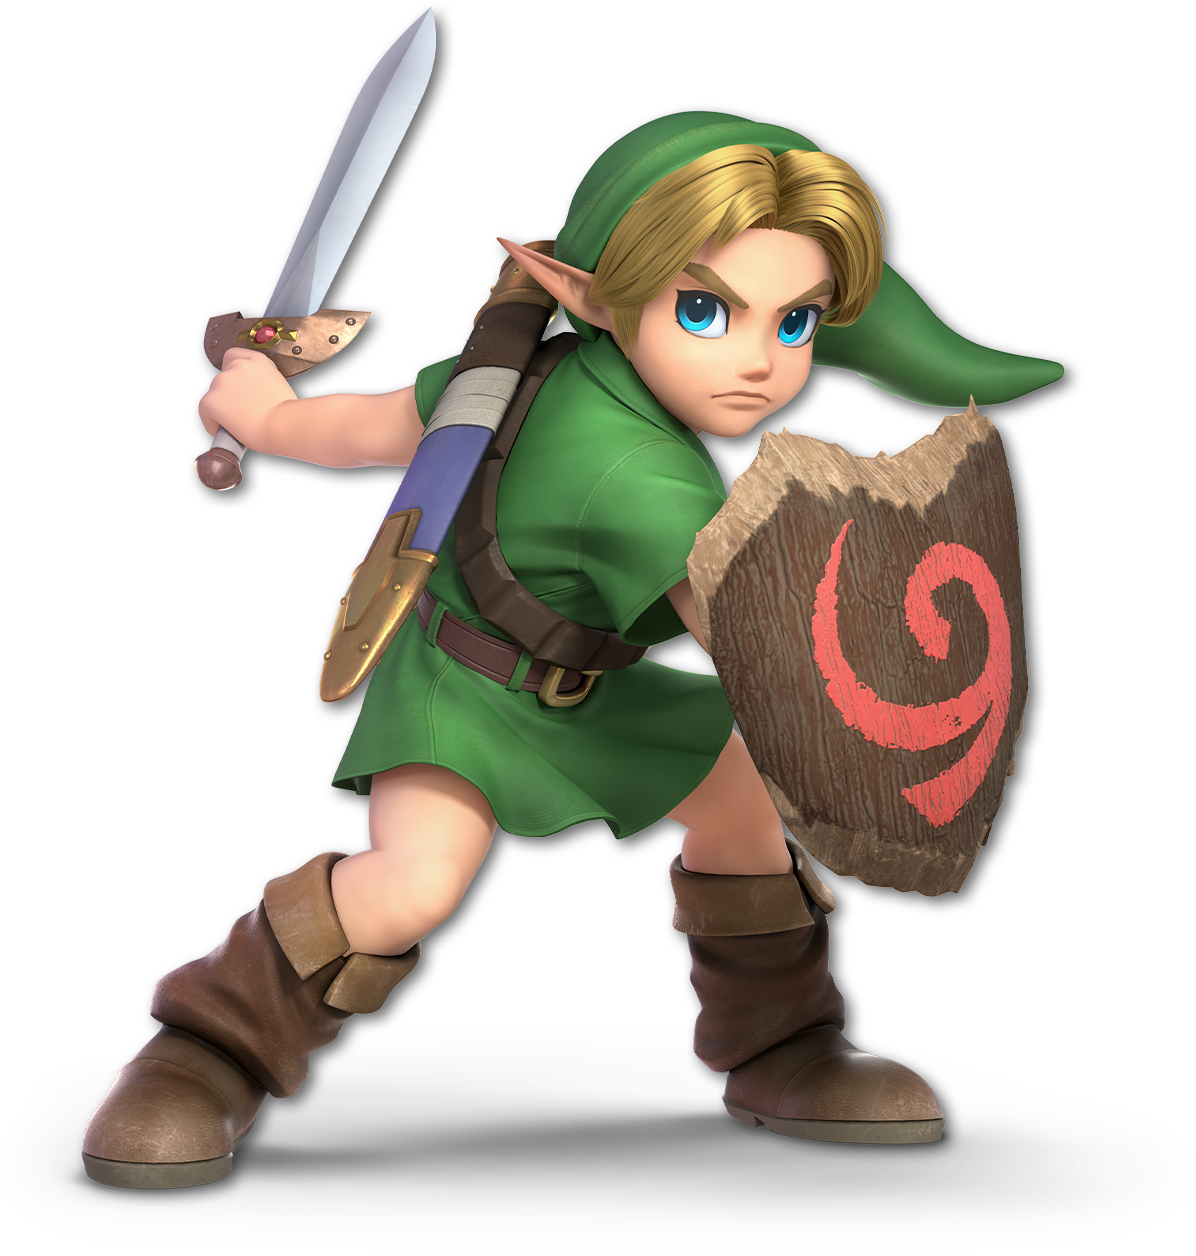 Super Smash Bros Charcter Full Body Pngs By Series Smash Bros Post Super Smash Bros Characters Smash Bros Super Smash Bros